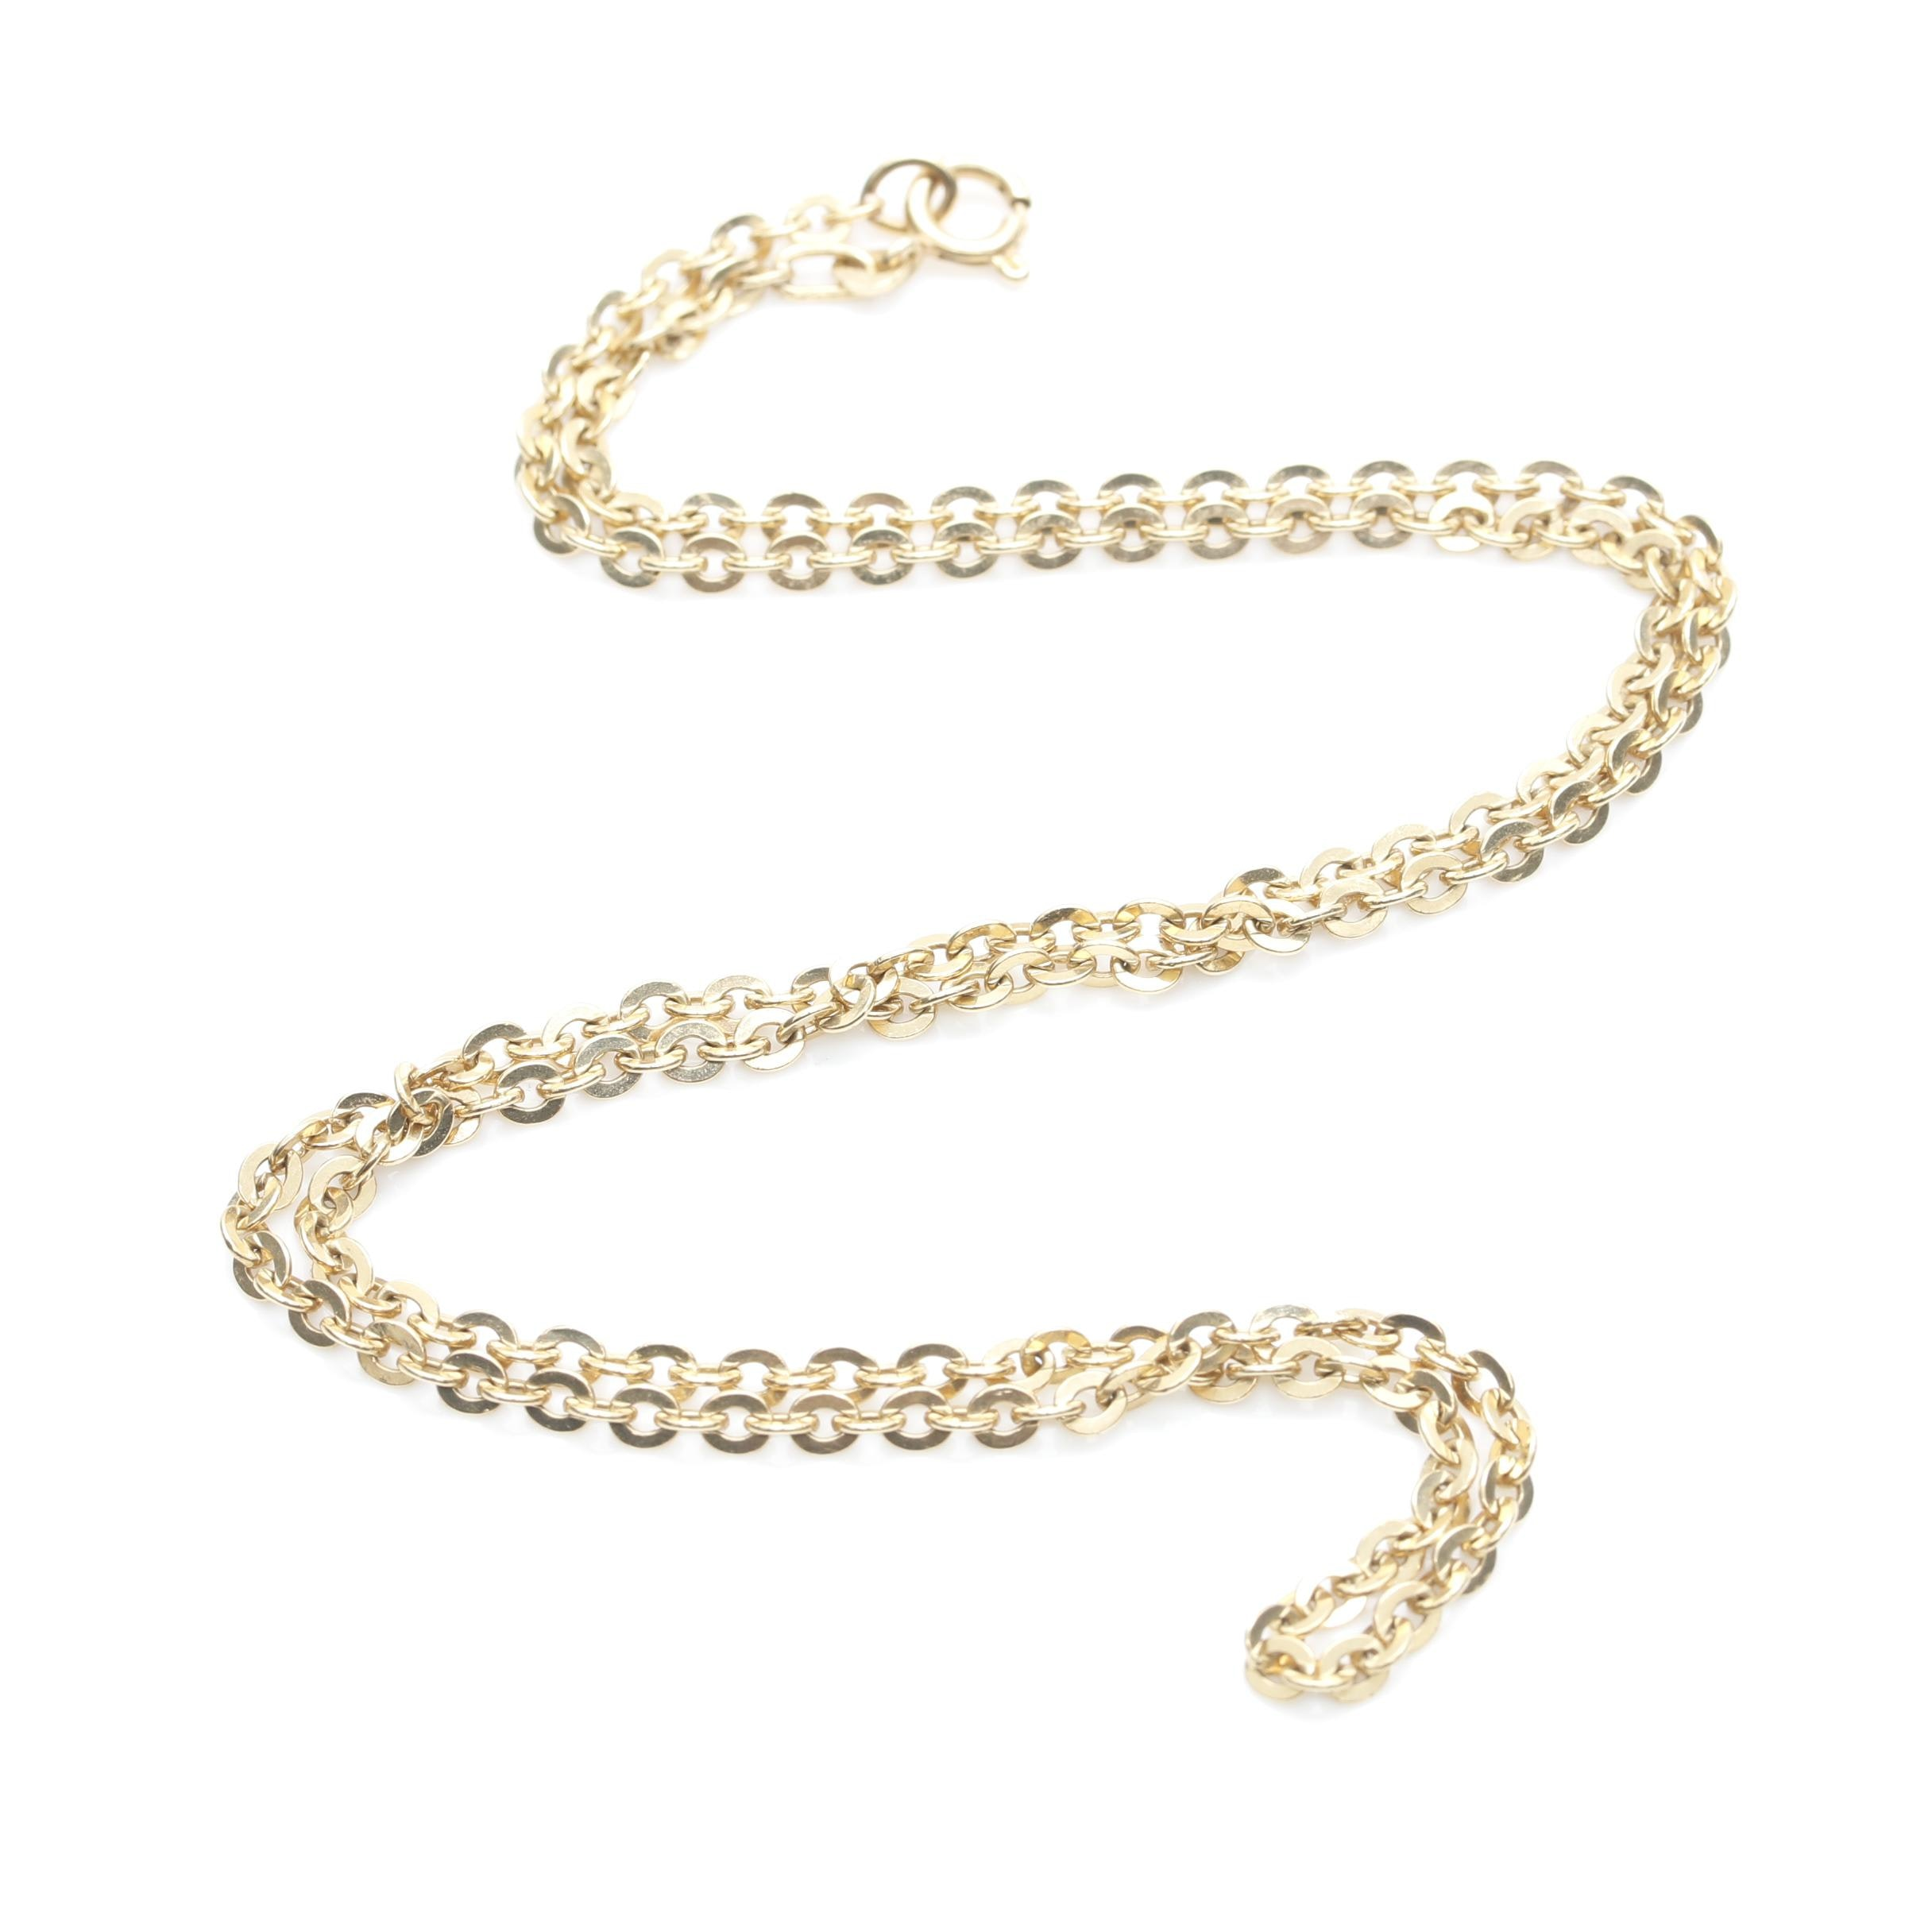 18K Yellow Gold Cable Chain Necklace